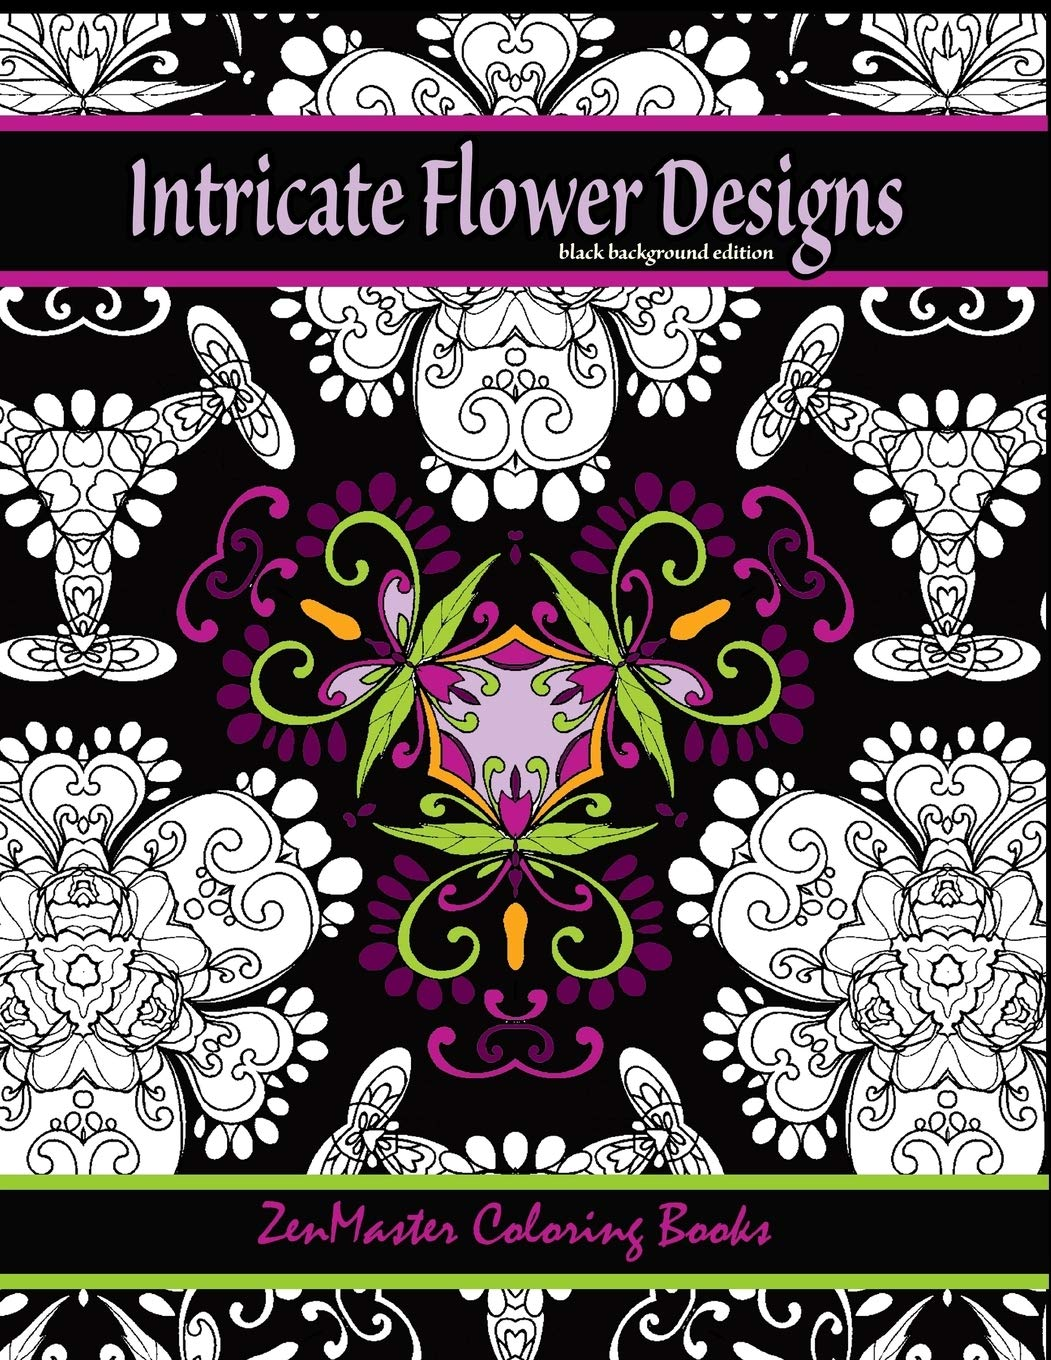 Amazon Com Intricate Flower Designs Black Background Edition